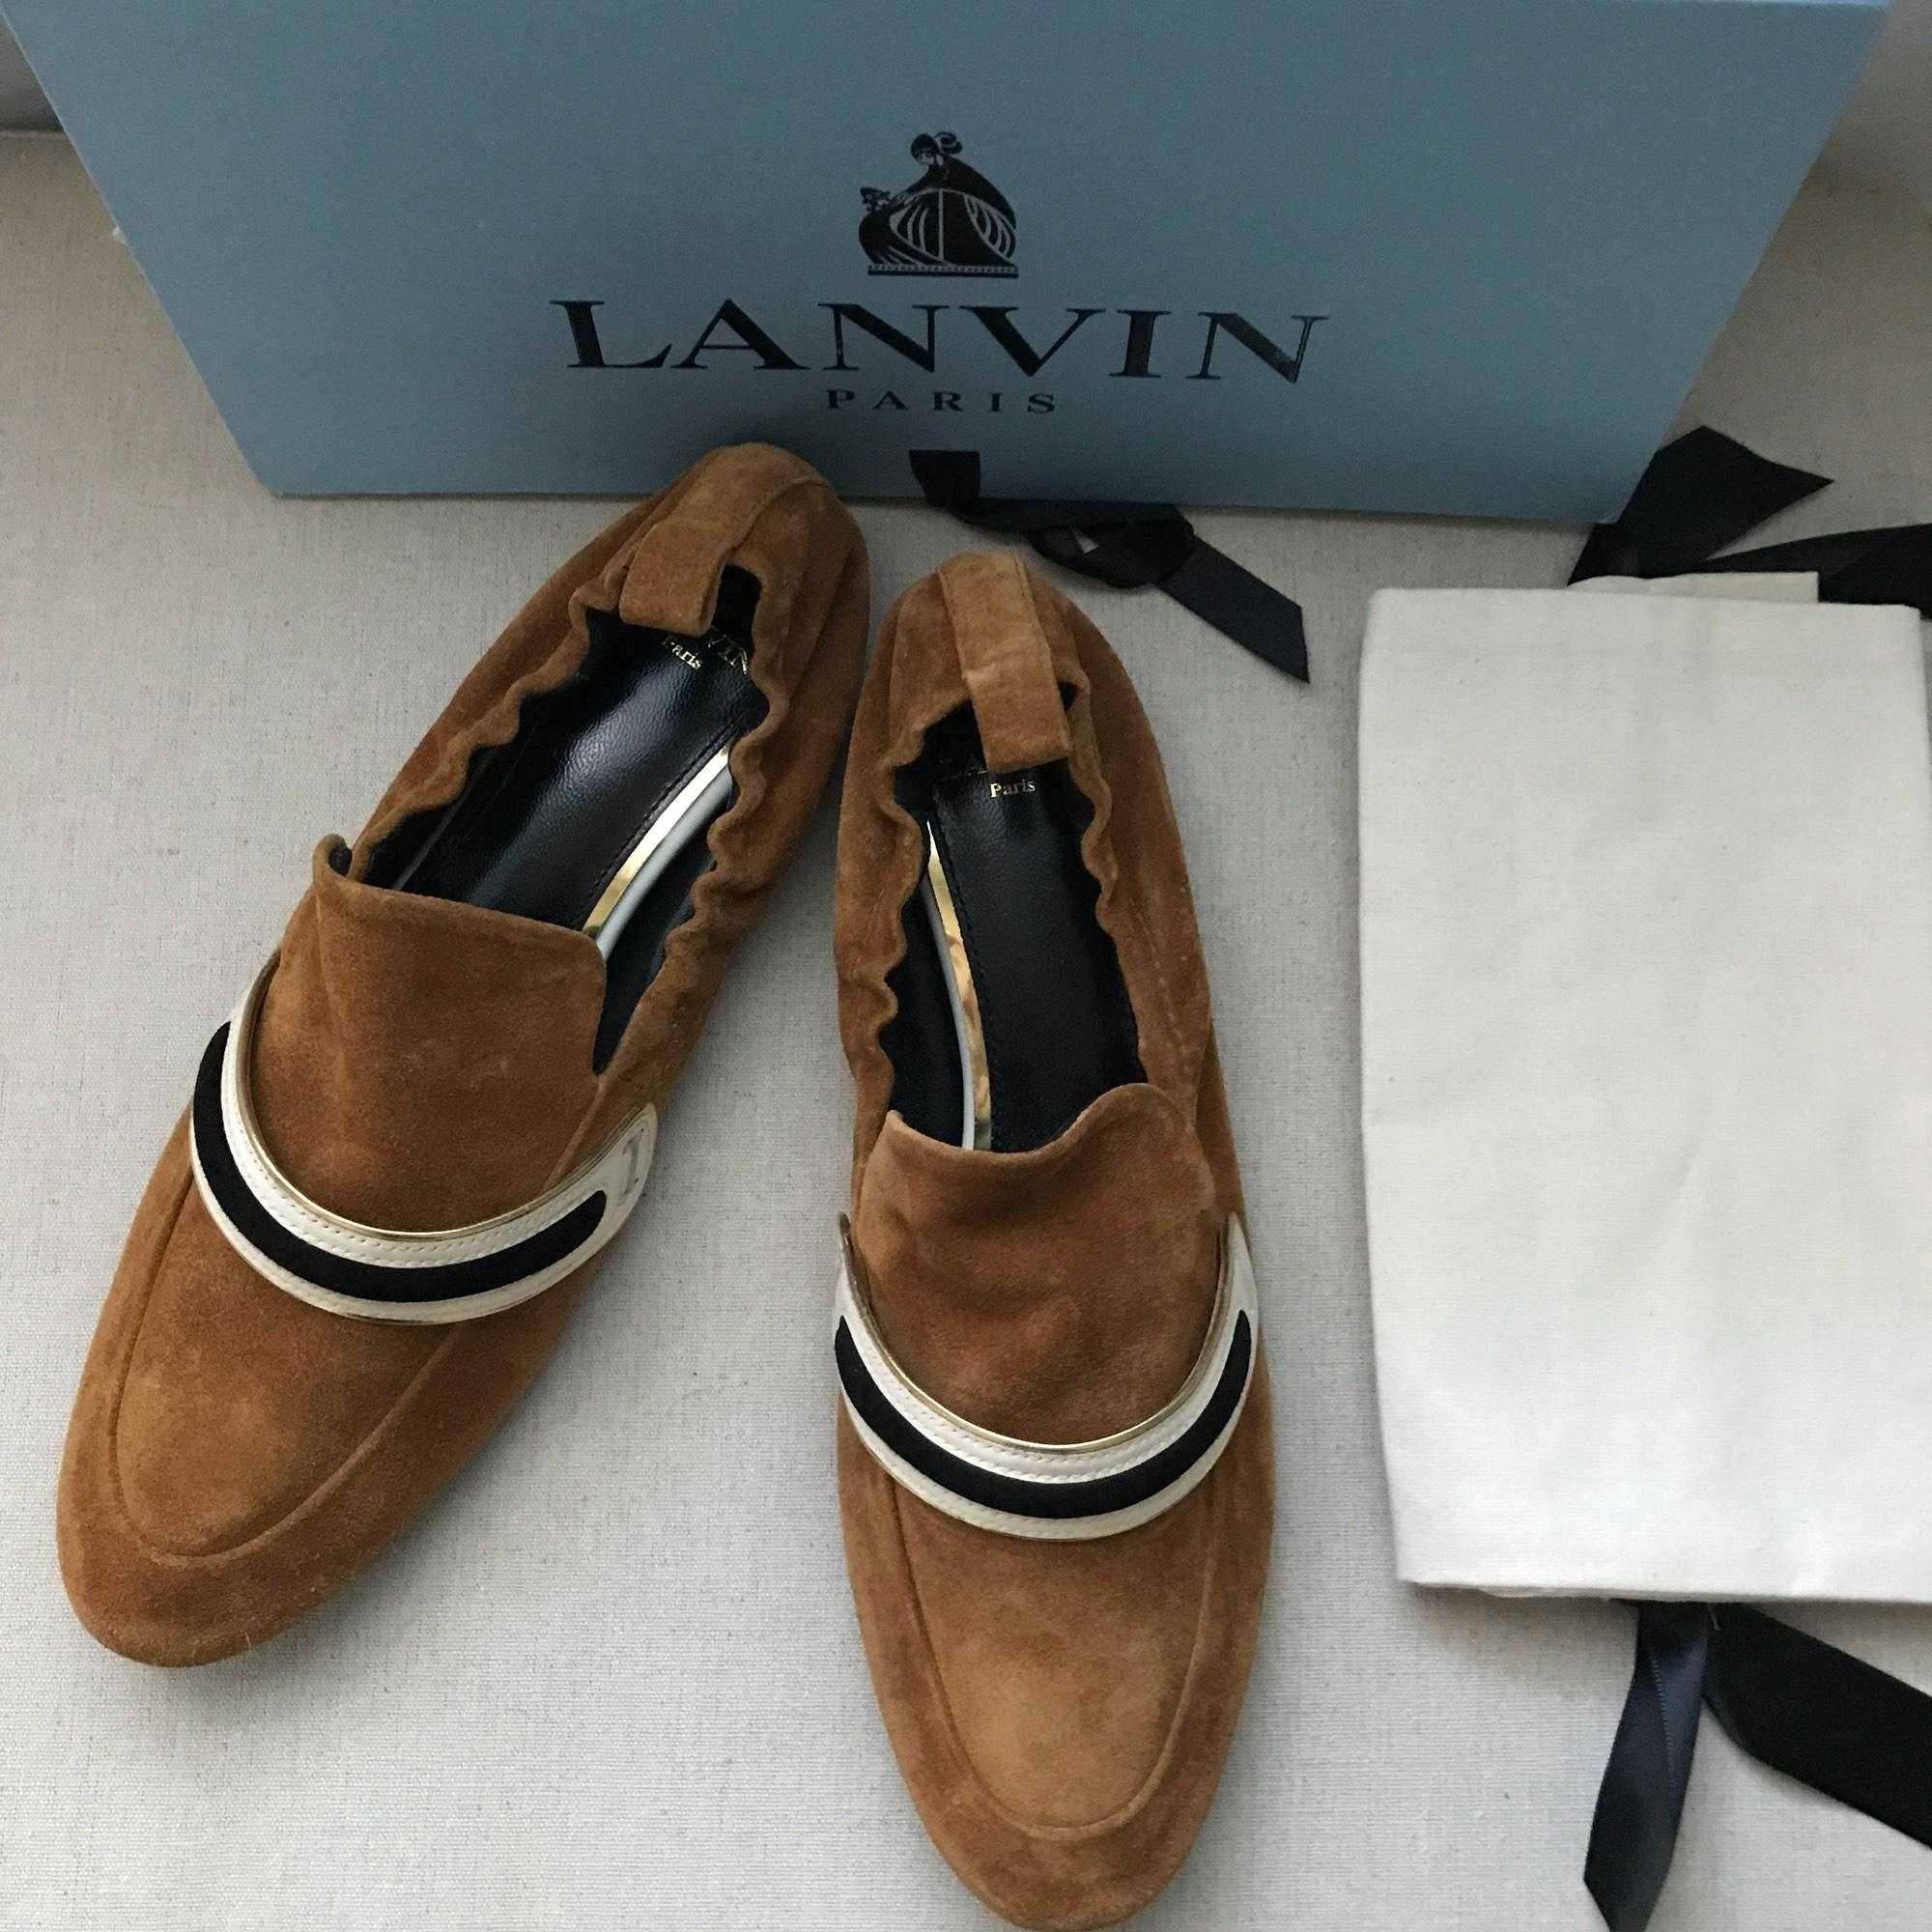 74a2e6f5b ... Lanvin Lanvin Lanvin Brown Banded Suede Moccasin Loafers Flats Size US  8 Regular (M